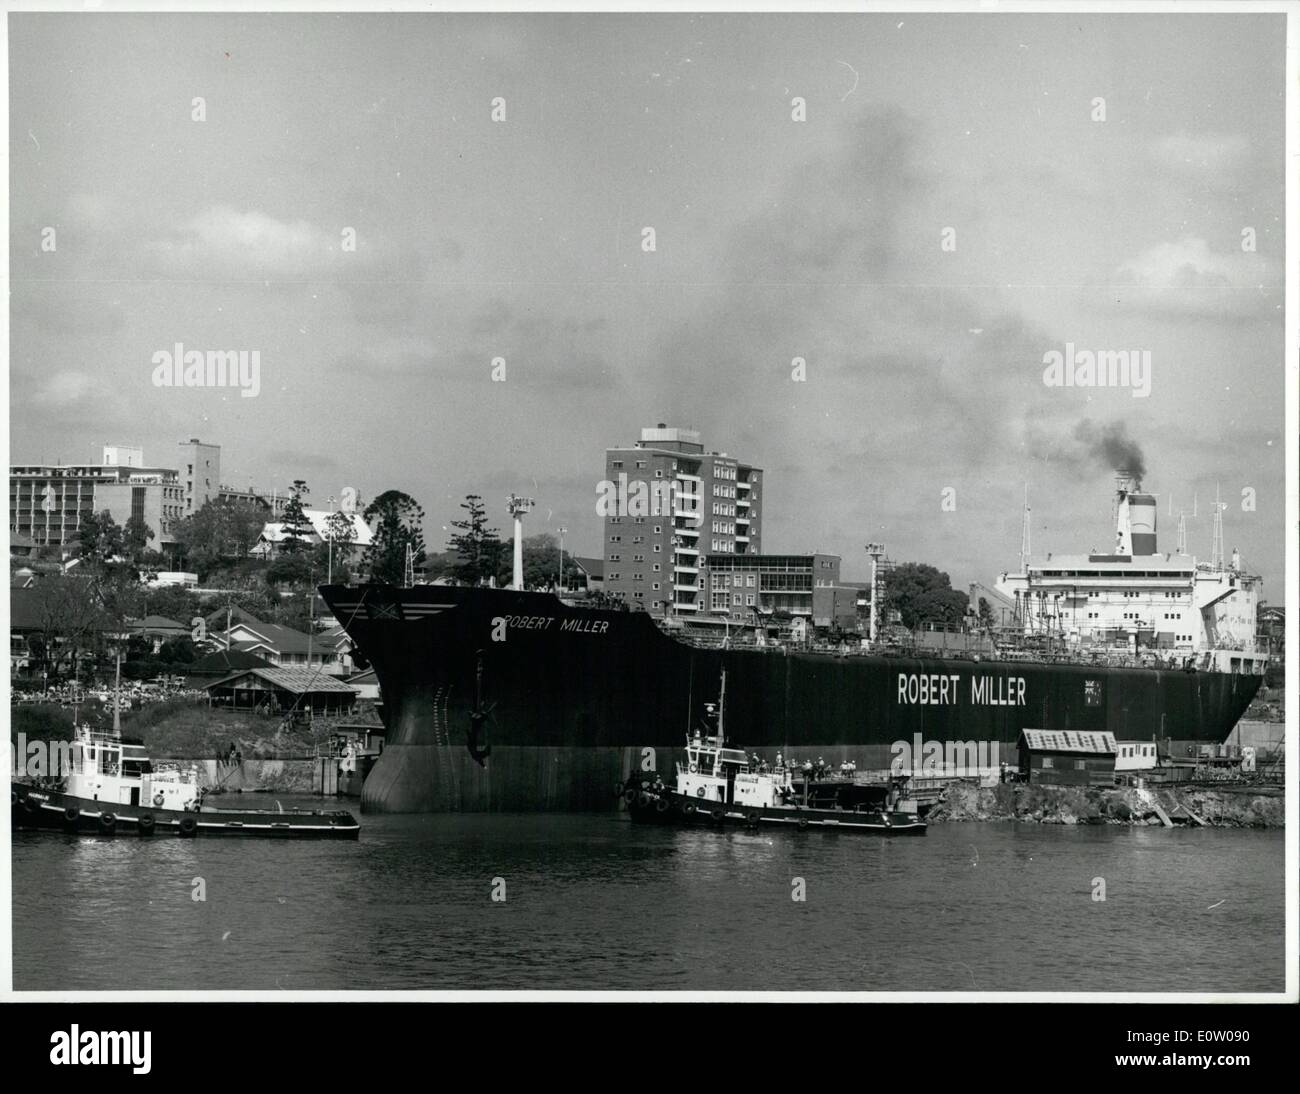 Oct. 10, 1960 - Tugs manoeuvre around the Australian-built tanker Robert Miller after its launching at Brisbane Stock Photo